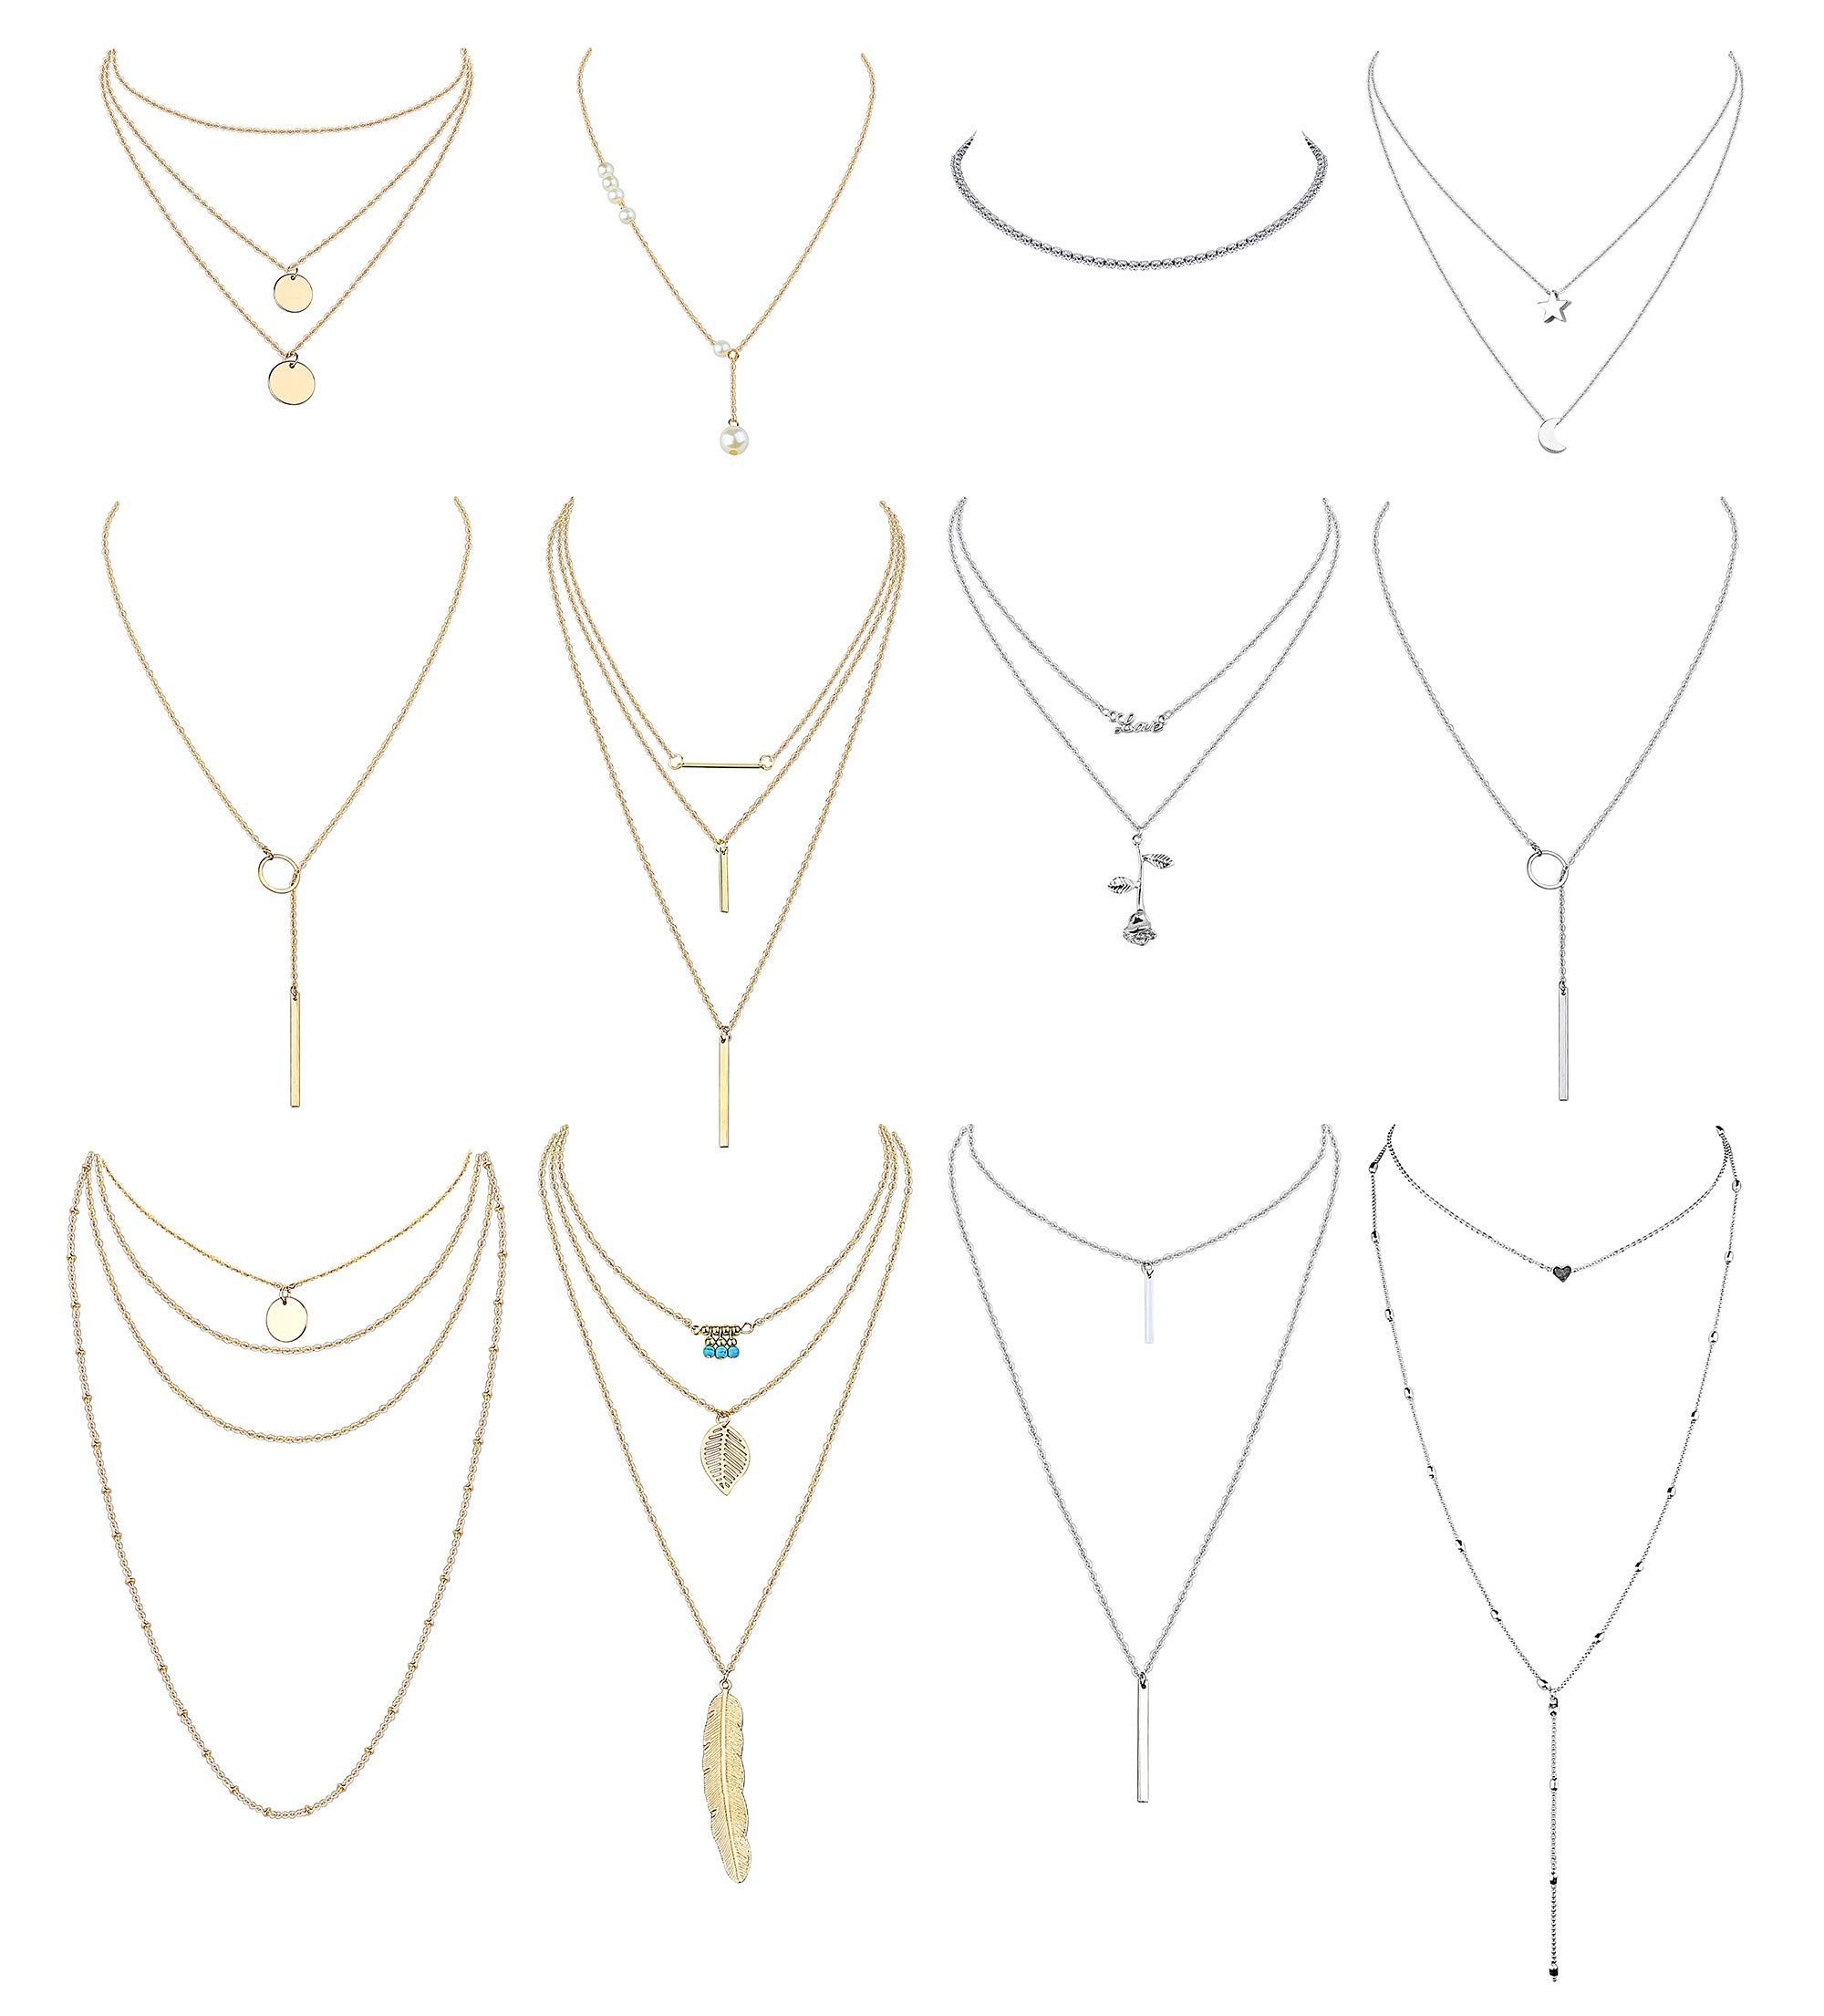 Finrezio 12 PCS Layered Necklace for Women Girls Multilayer Sexy Long Choker Chain Y Necklace Gold & Silver Tone Bar Feather Pendent Necklace Sets by Finrezio